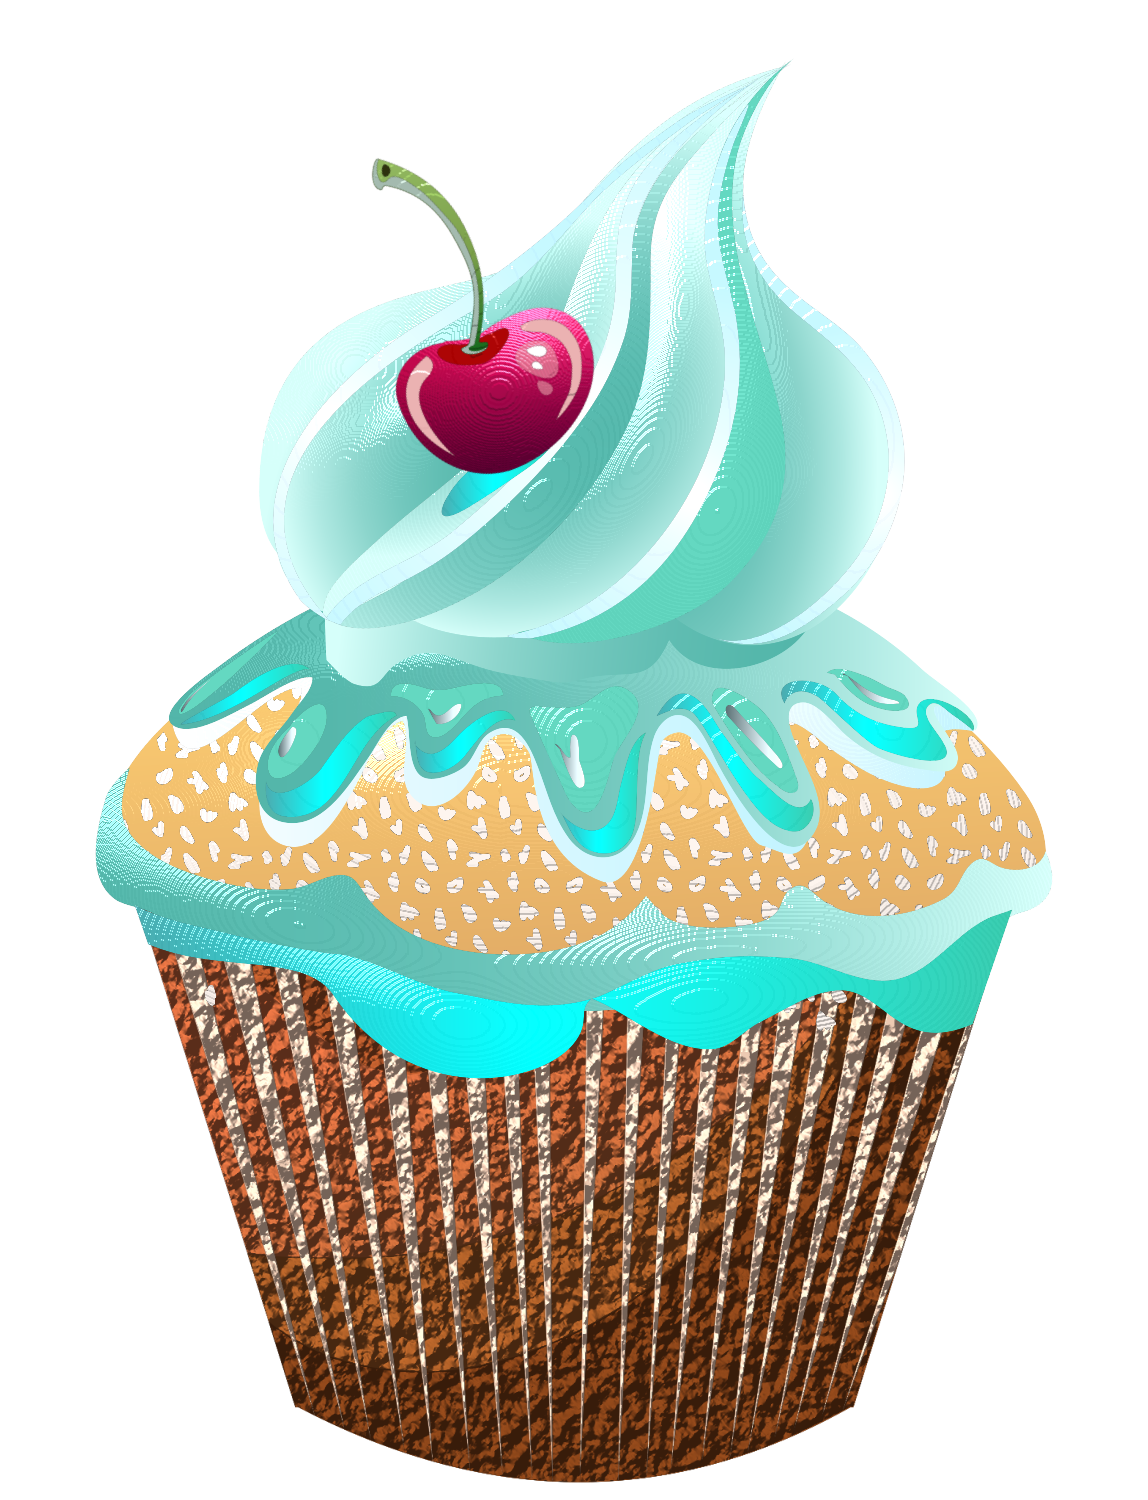 png freeuse download drawing cupcakes realistic #93970687